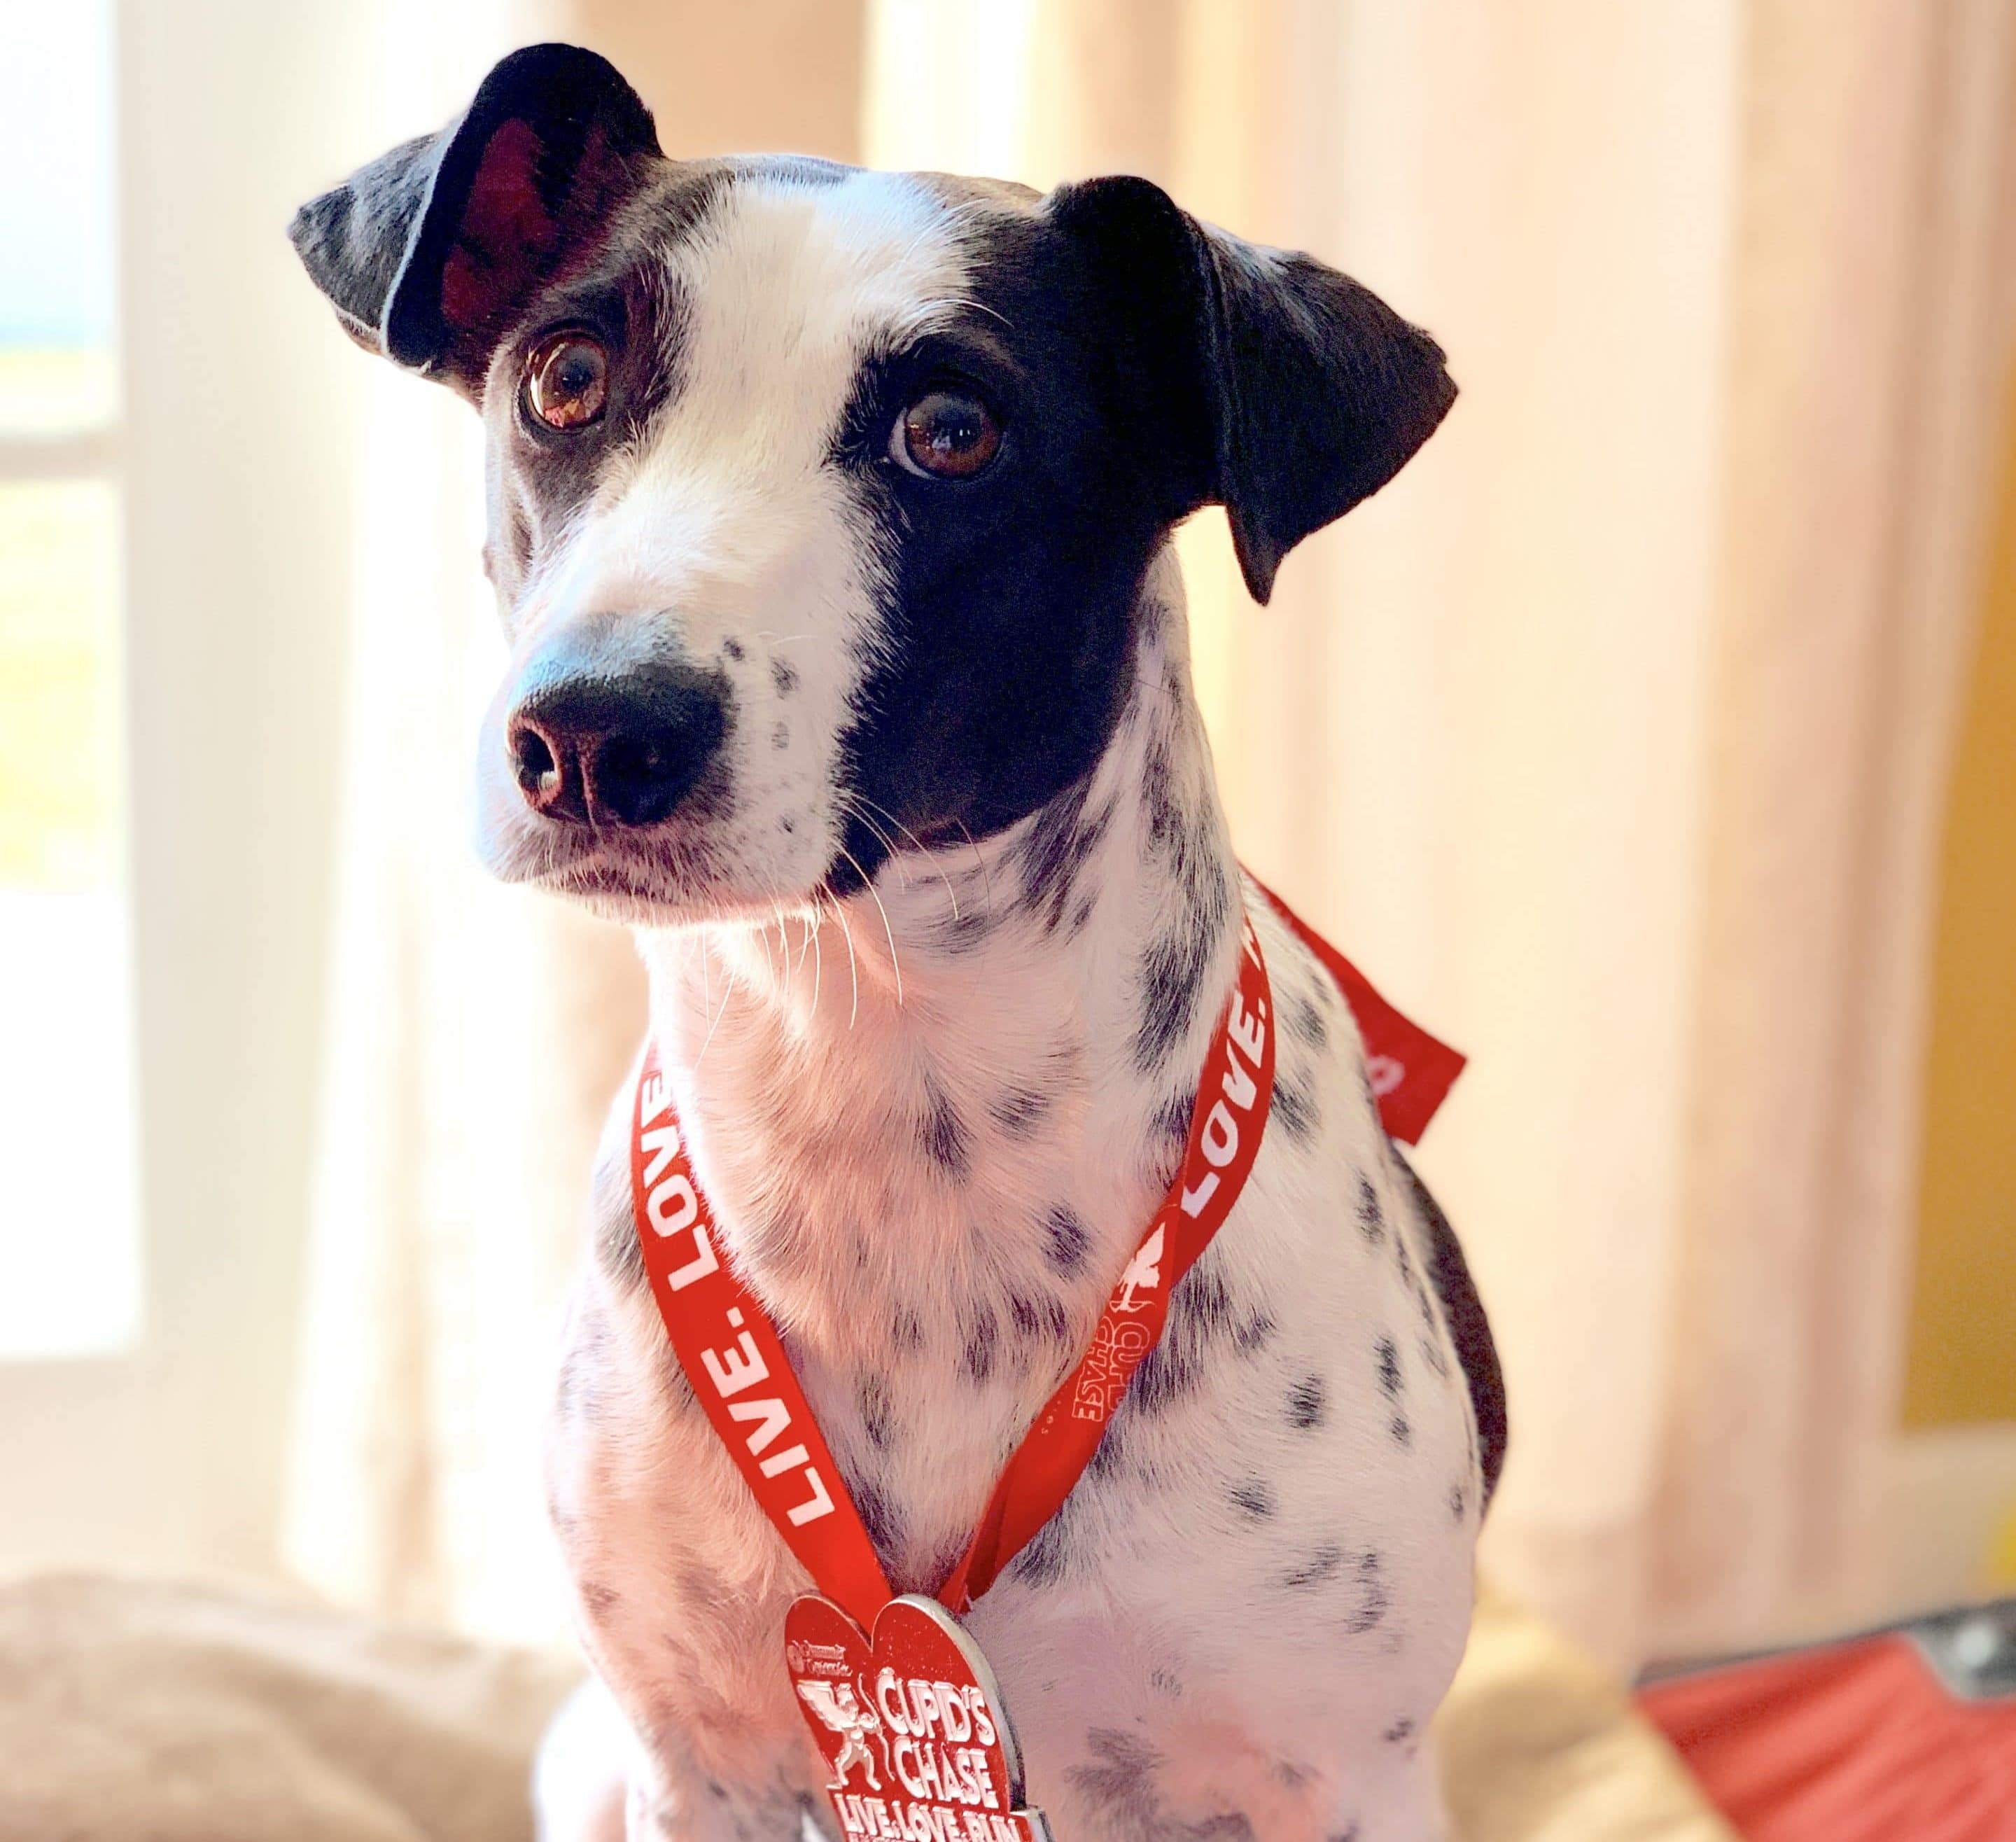 Cow got her participation medal from her second dog friendly 5k